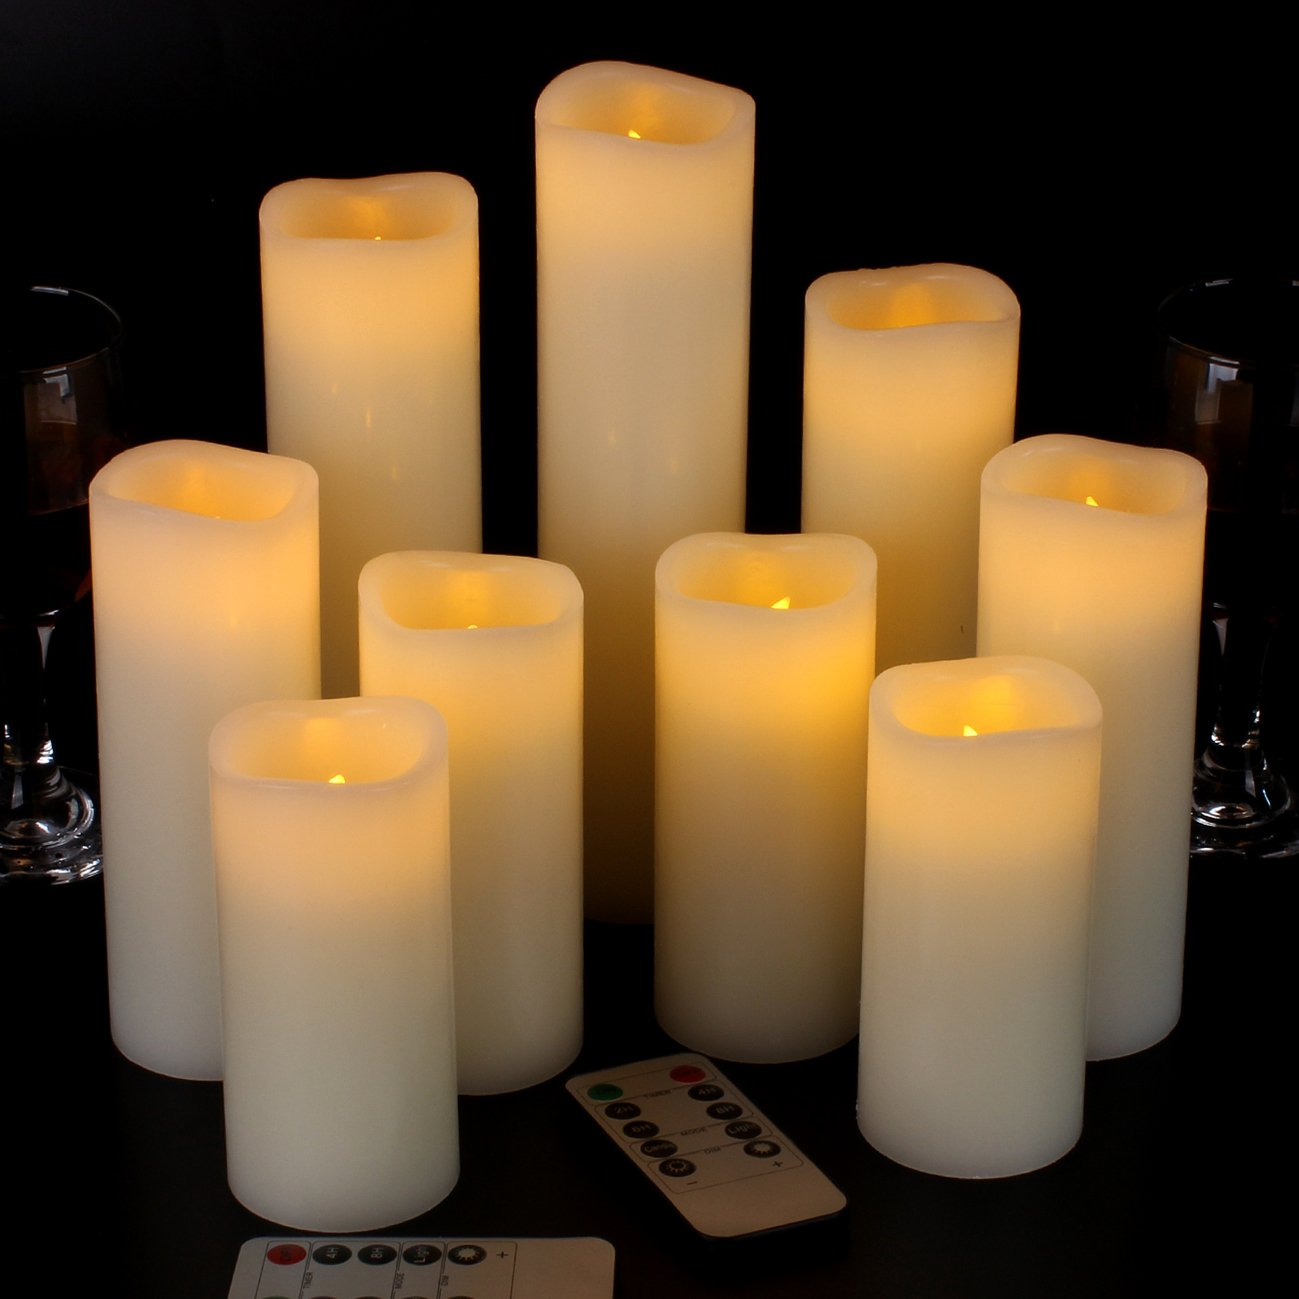 Vinkor Flameless Candles Battery Operated Candles 4'' 5'' 6'' 7'' 8'' 9'' Set of 9 Ivory Real Wax Pillar LED Candles with 10-Key Remote and Cycling 24 Hours Timer